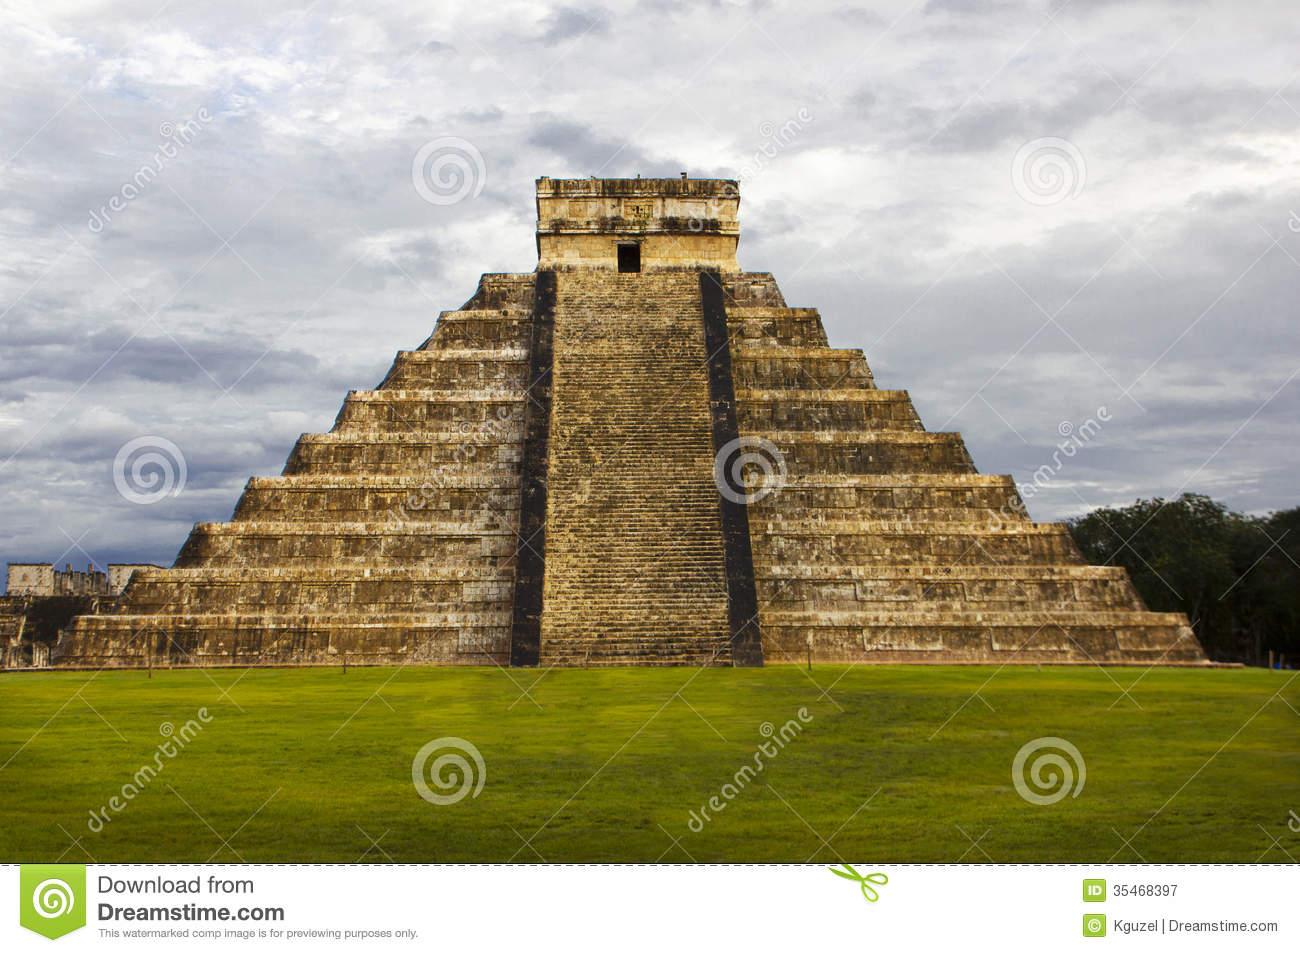 religion at chichen itza On maya history and religion, then he would be disappointed  history, religious  practices, and gods there  chichen itza in the north during the ninth and tenth .